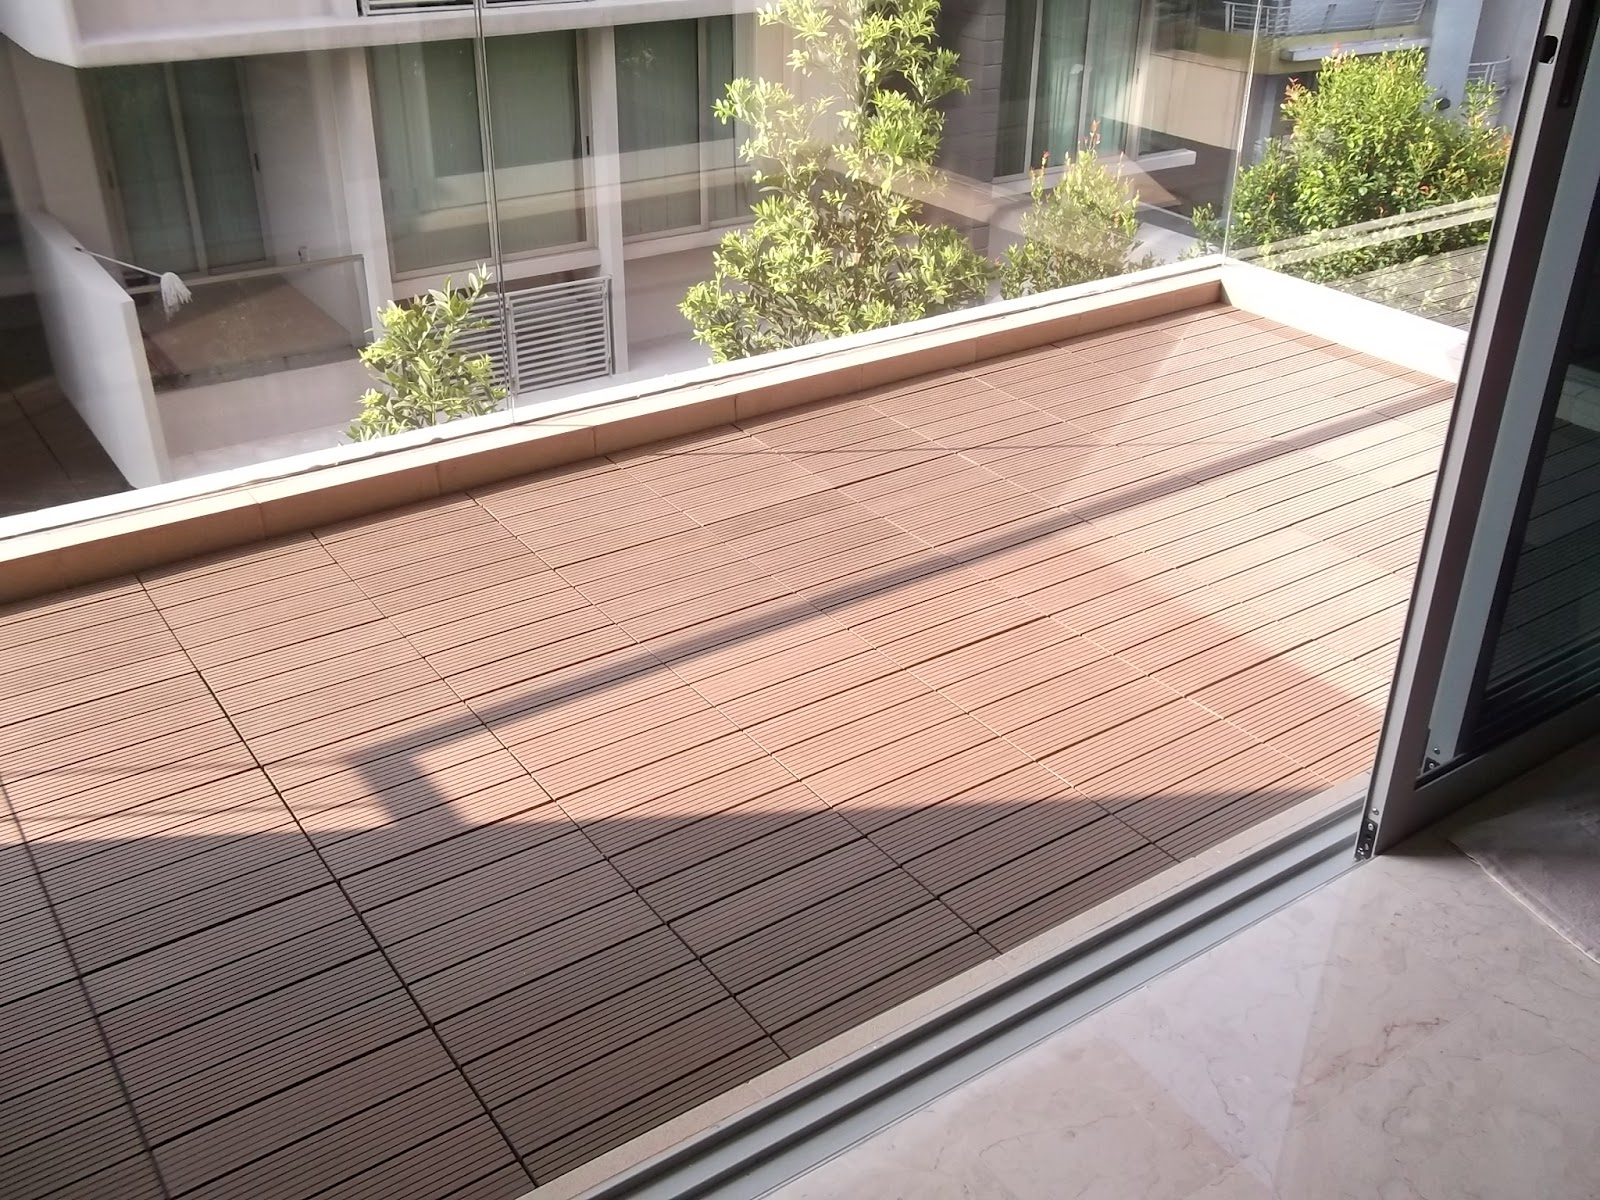 Outdoor Timber Tiles Outdoor Decking Tiles Outdoor Ideas